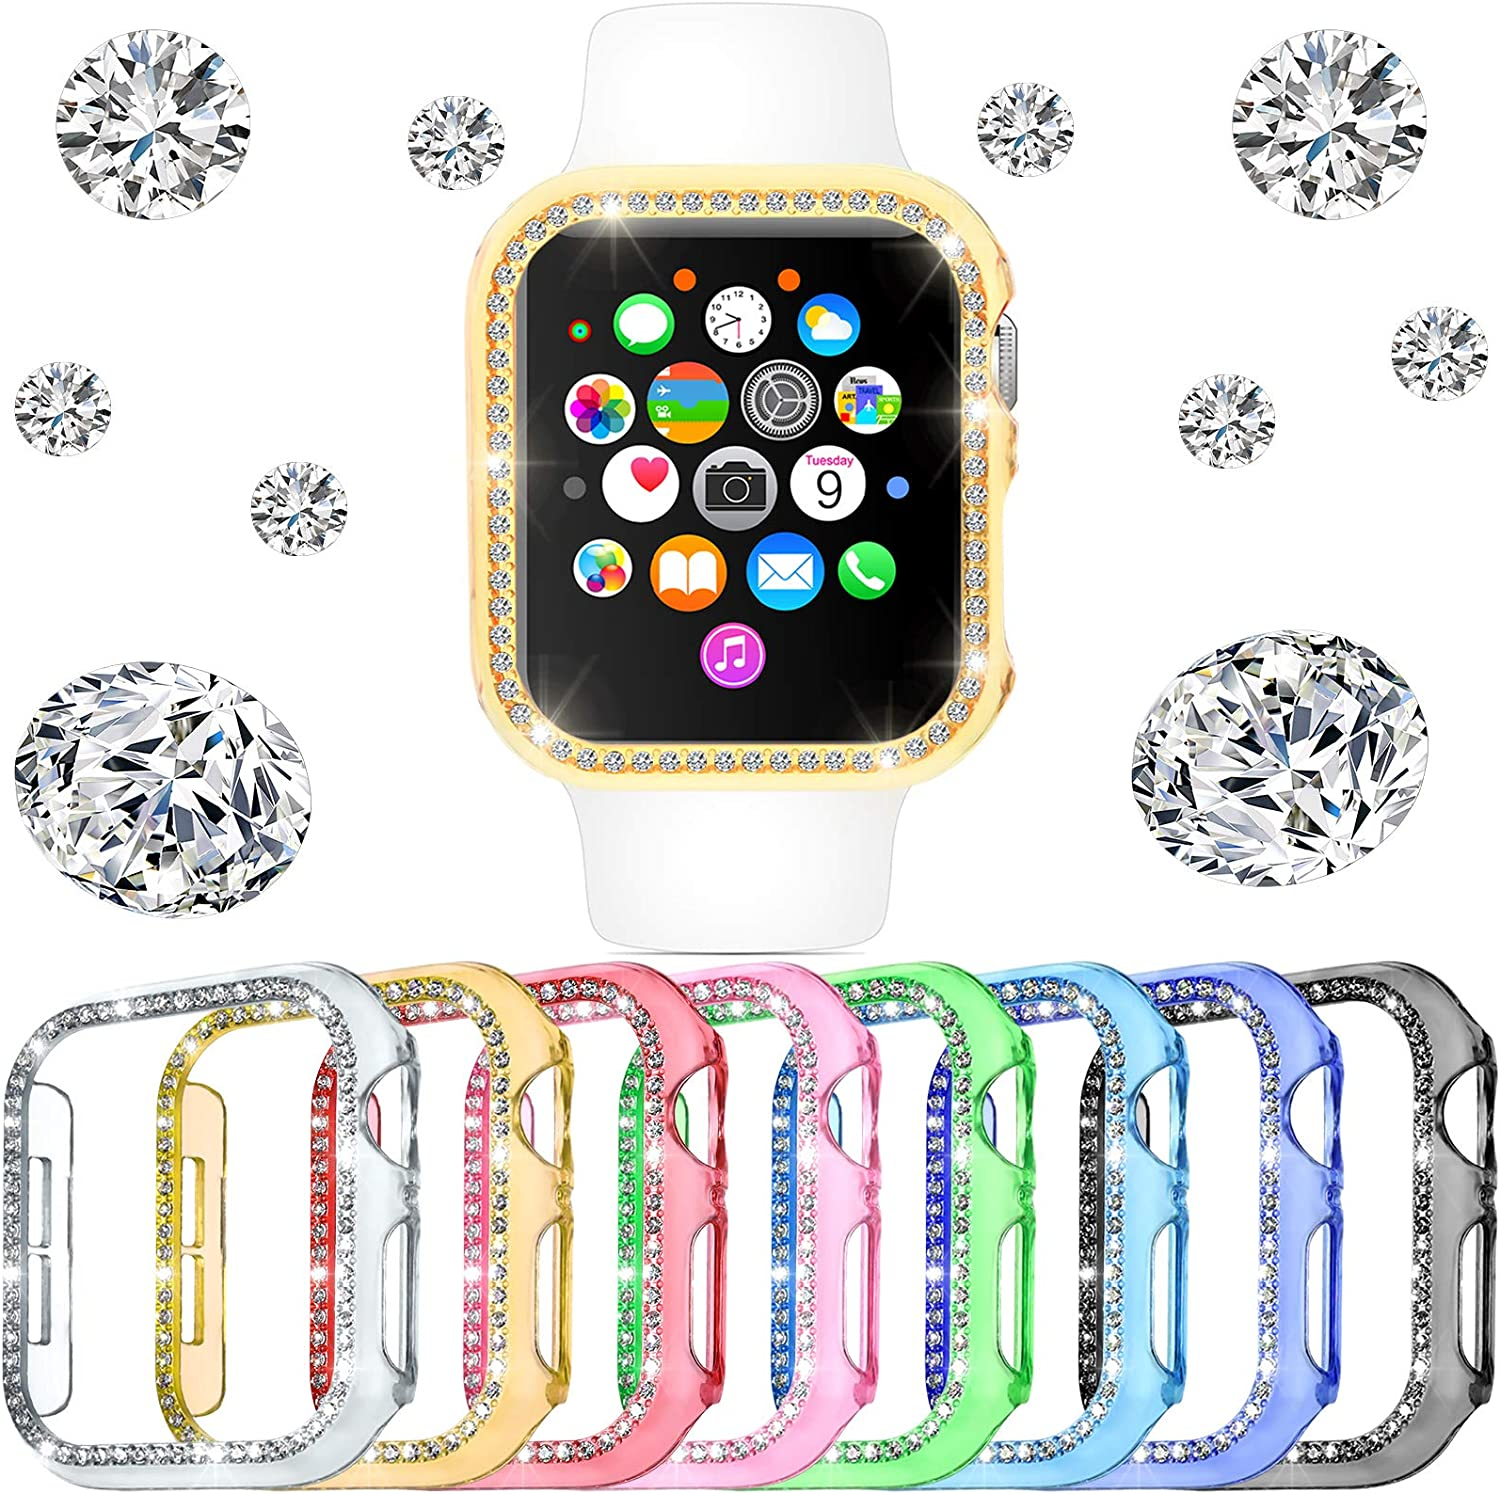 8 Pieces Watch Protector Max 71% OFF Compatible with Long-awaited 5 Series 4 6 SE iWatch